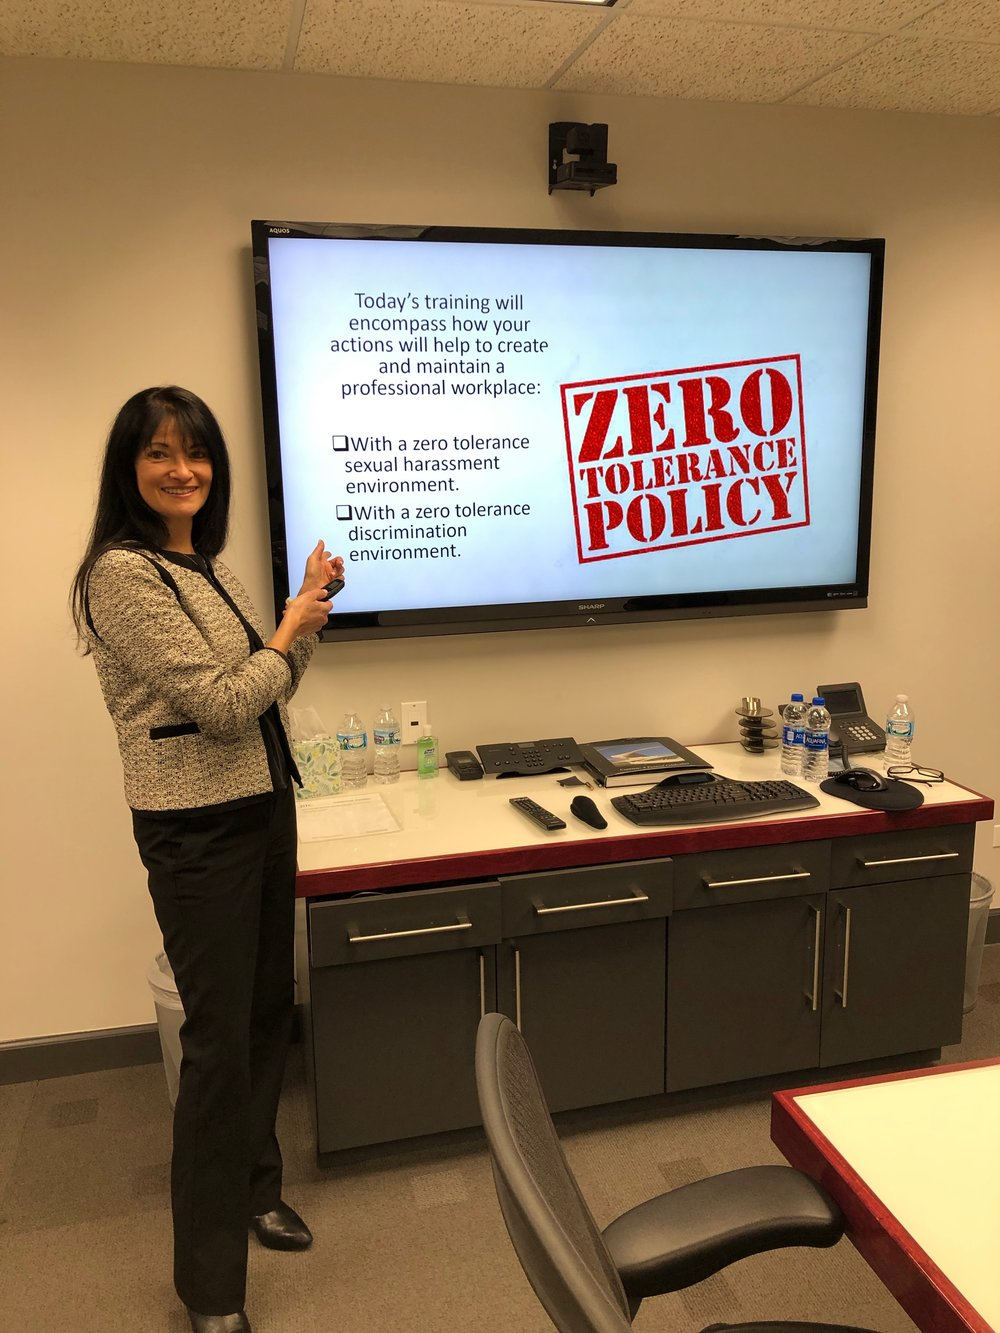 Caren Naidoff providing training to one of our clients on Zero Tolerance Sexual Harassment and Discrimination.